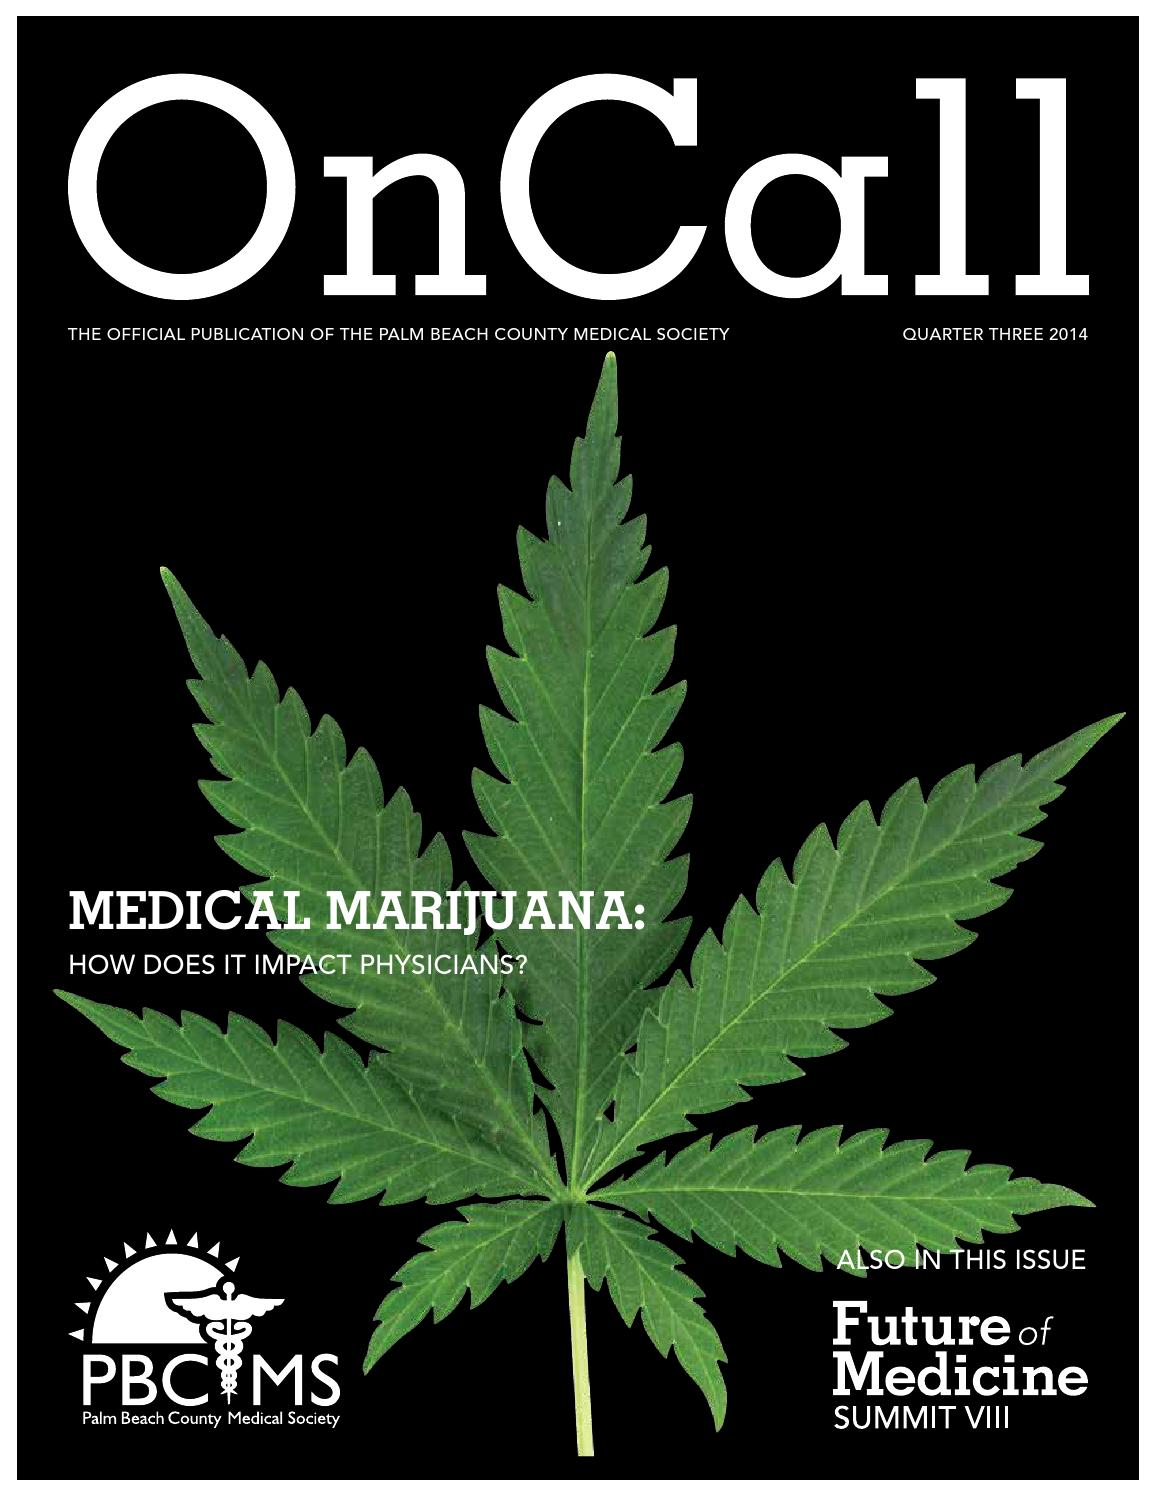 OnCall Quarter 3 - 2014 by Palm Beach County Medical Society - issuu